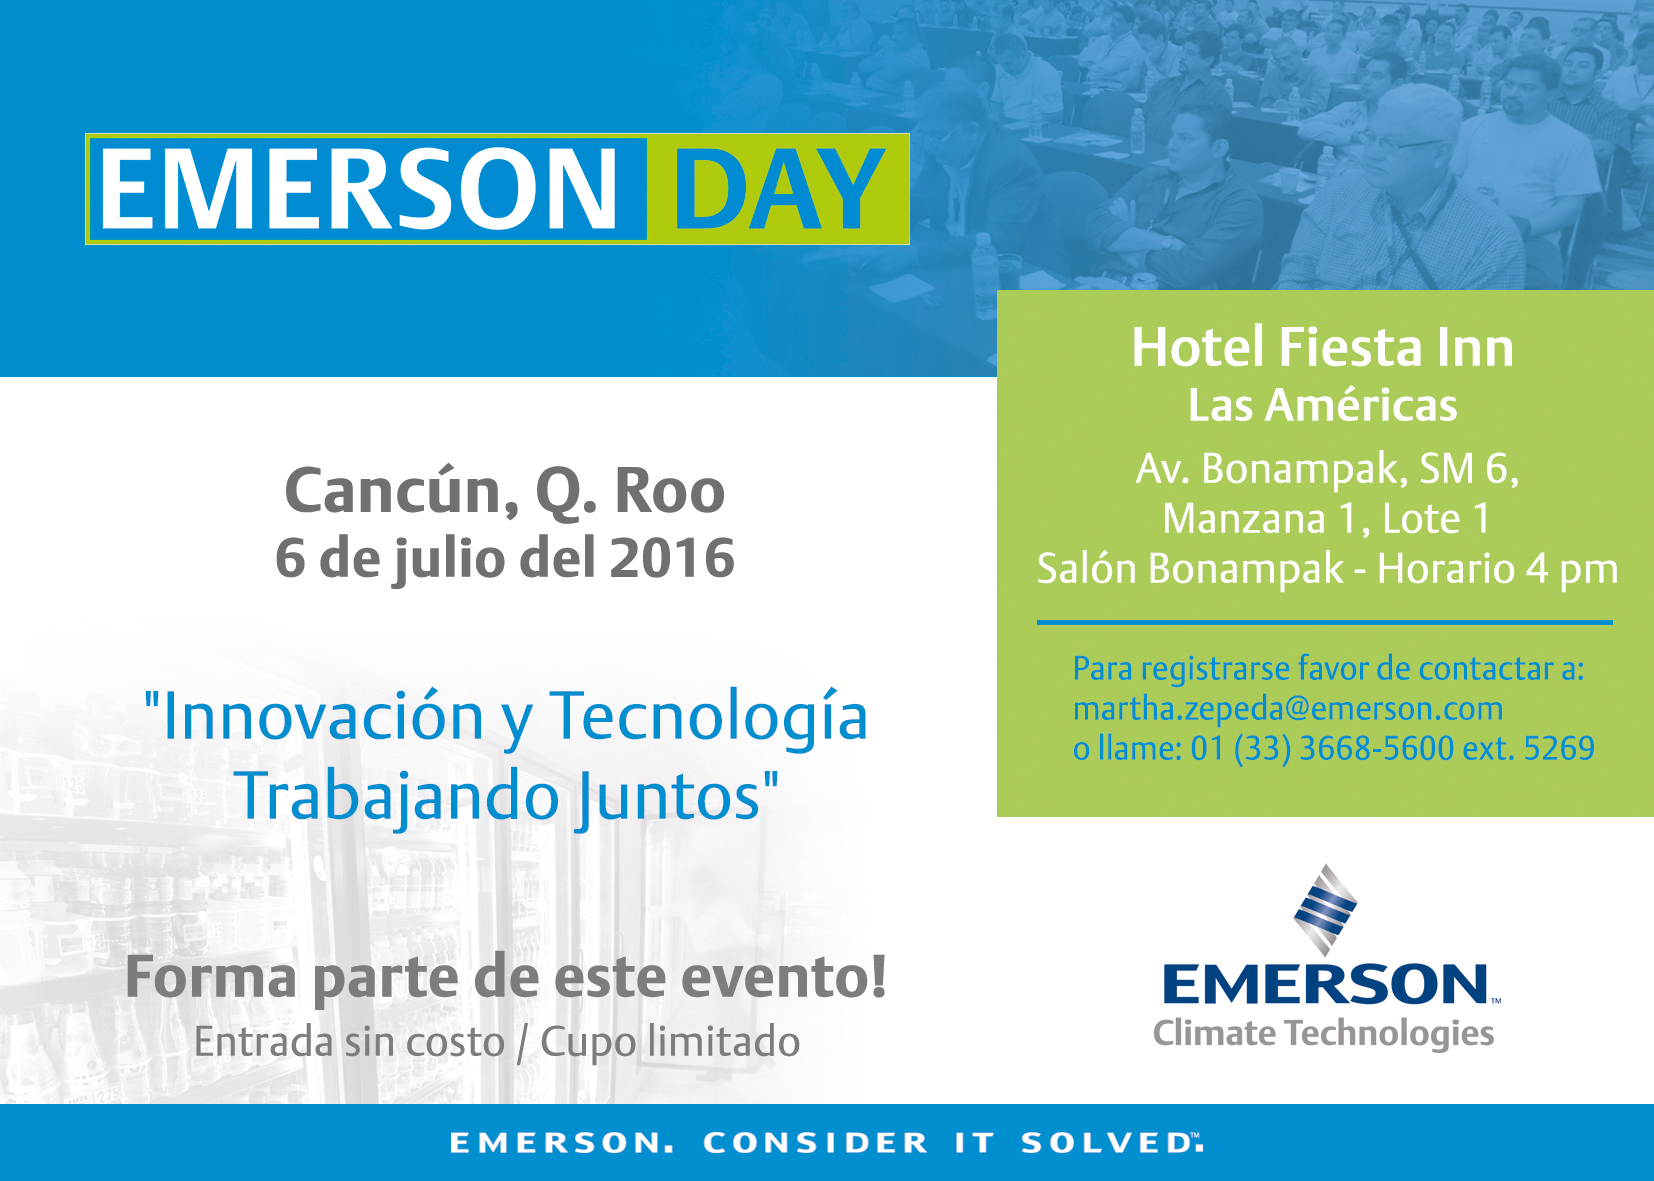 Emerson Day Cancún